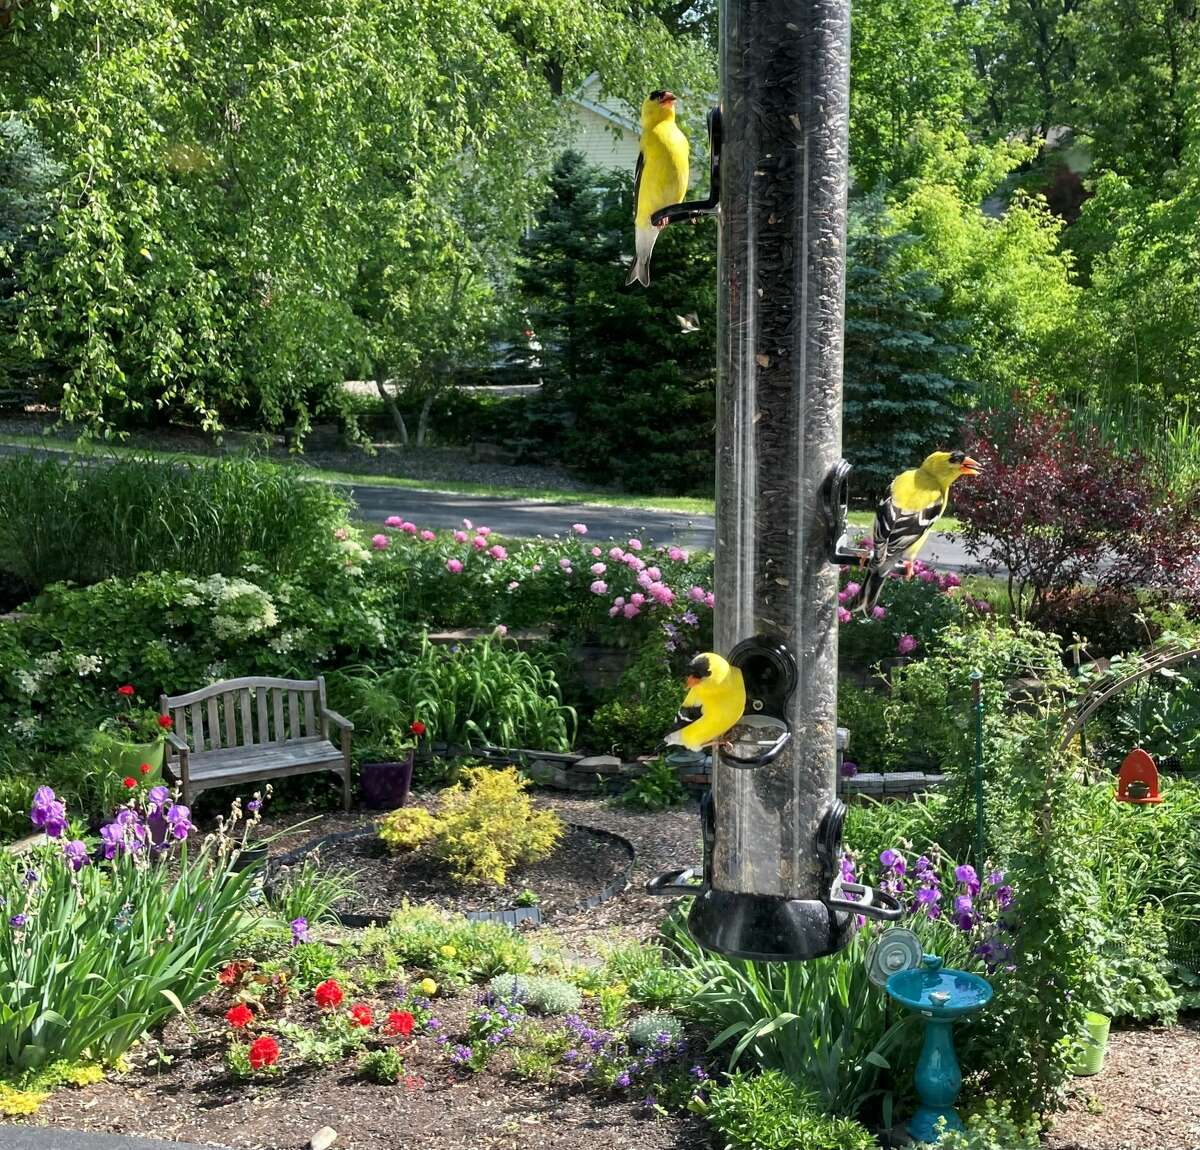 From Carol Turner of Slingerlands: Finches at the feeder in their full yellow summer colors, with my garden as background. We have had as many as five at a time on the feeder - a full house.